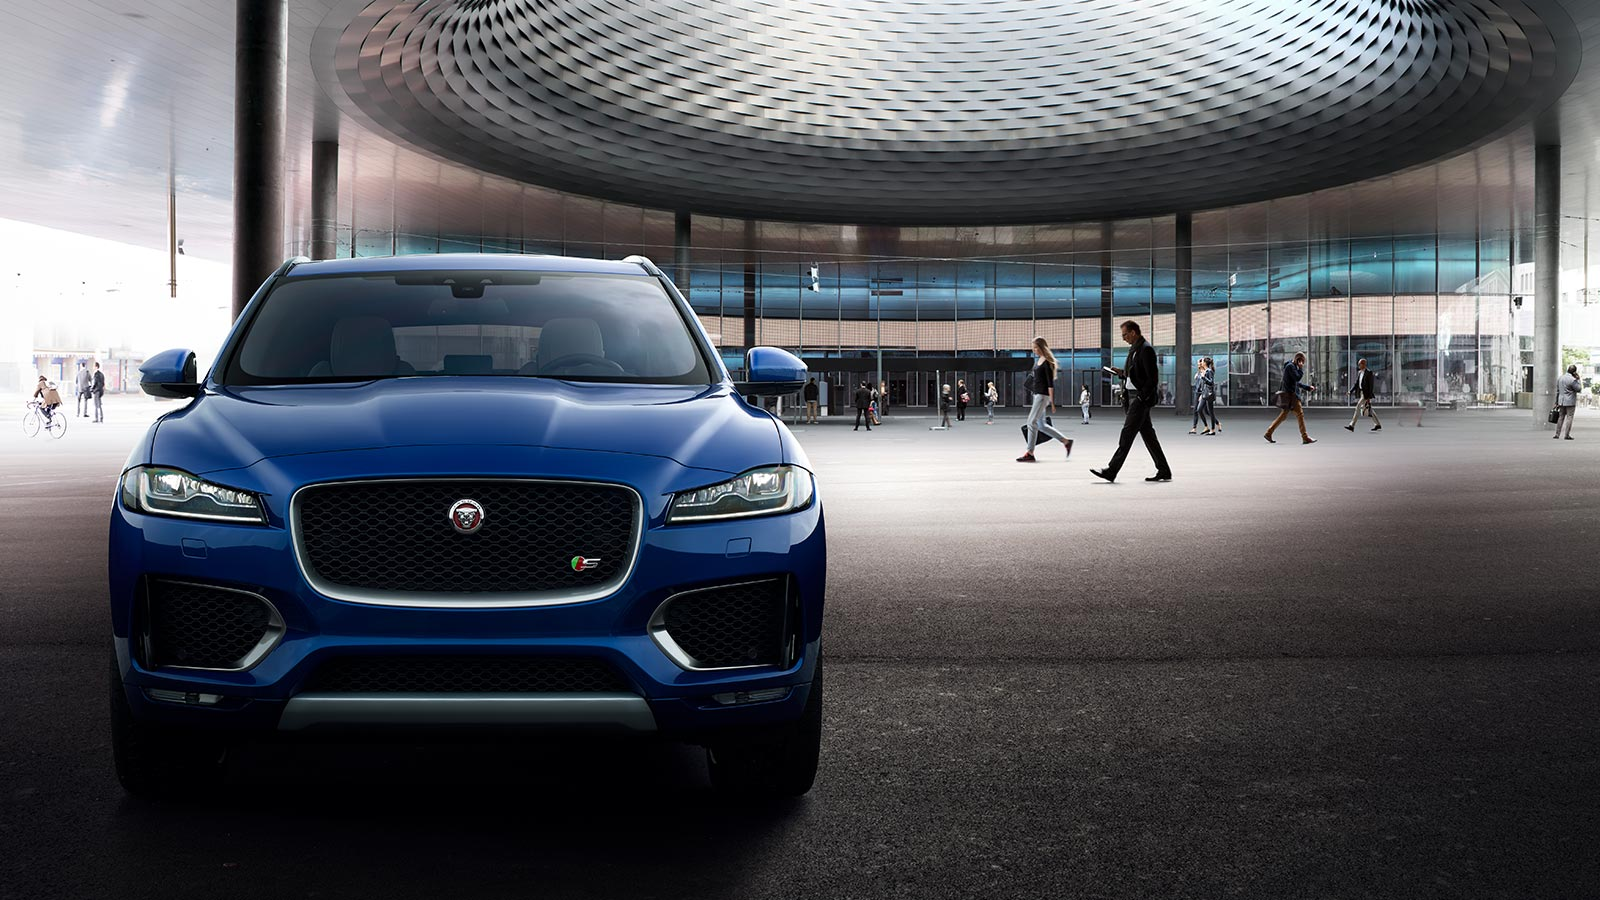 Jaguar F-PACE Blue Exterior Front Facing.